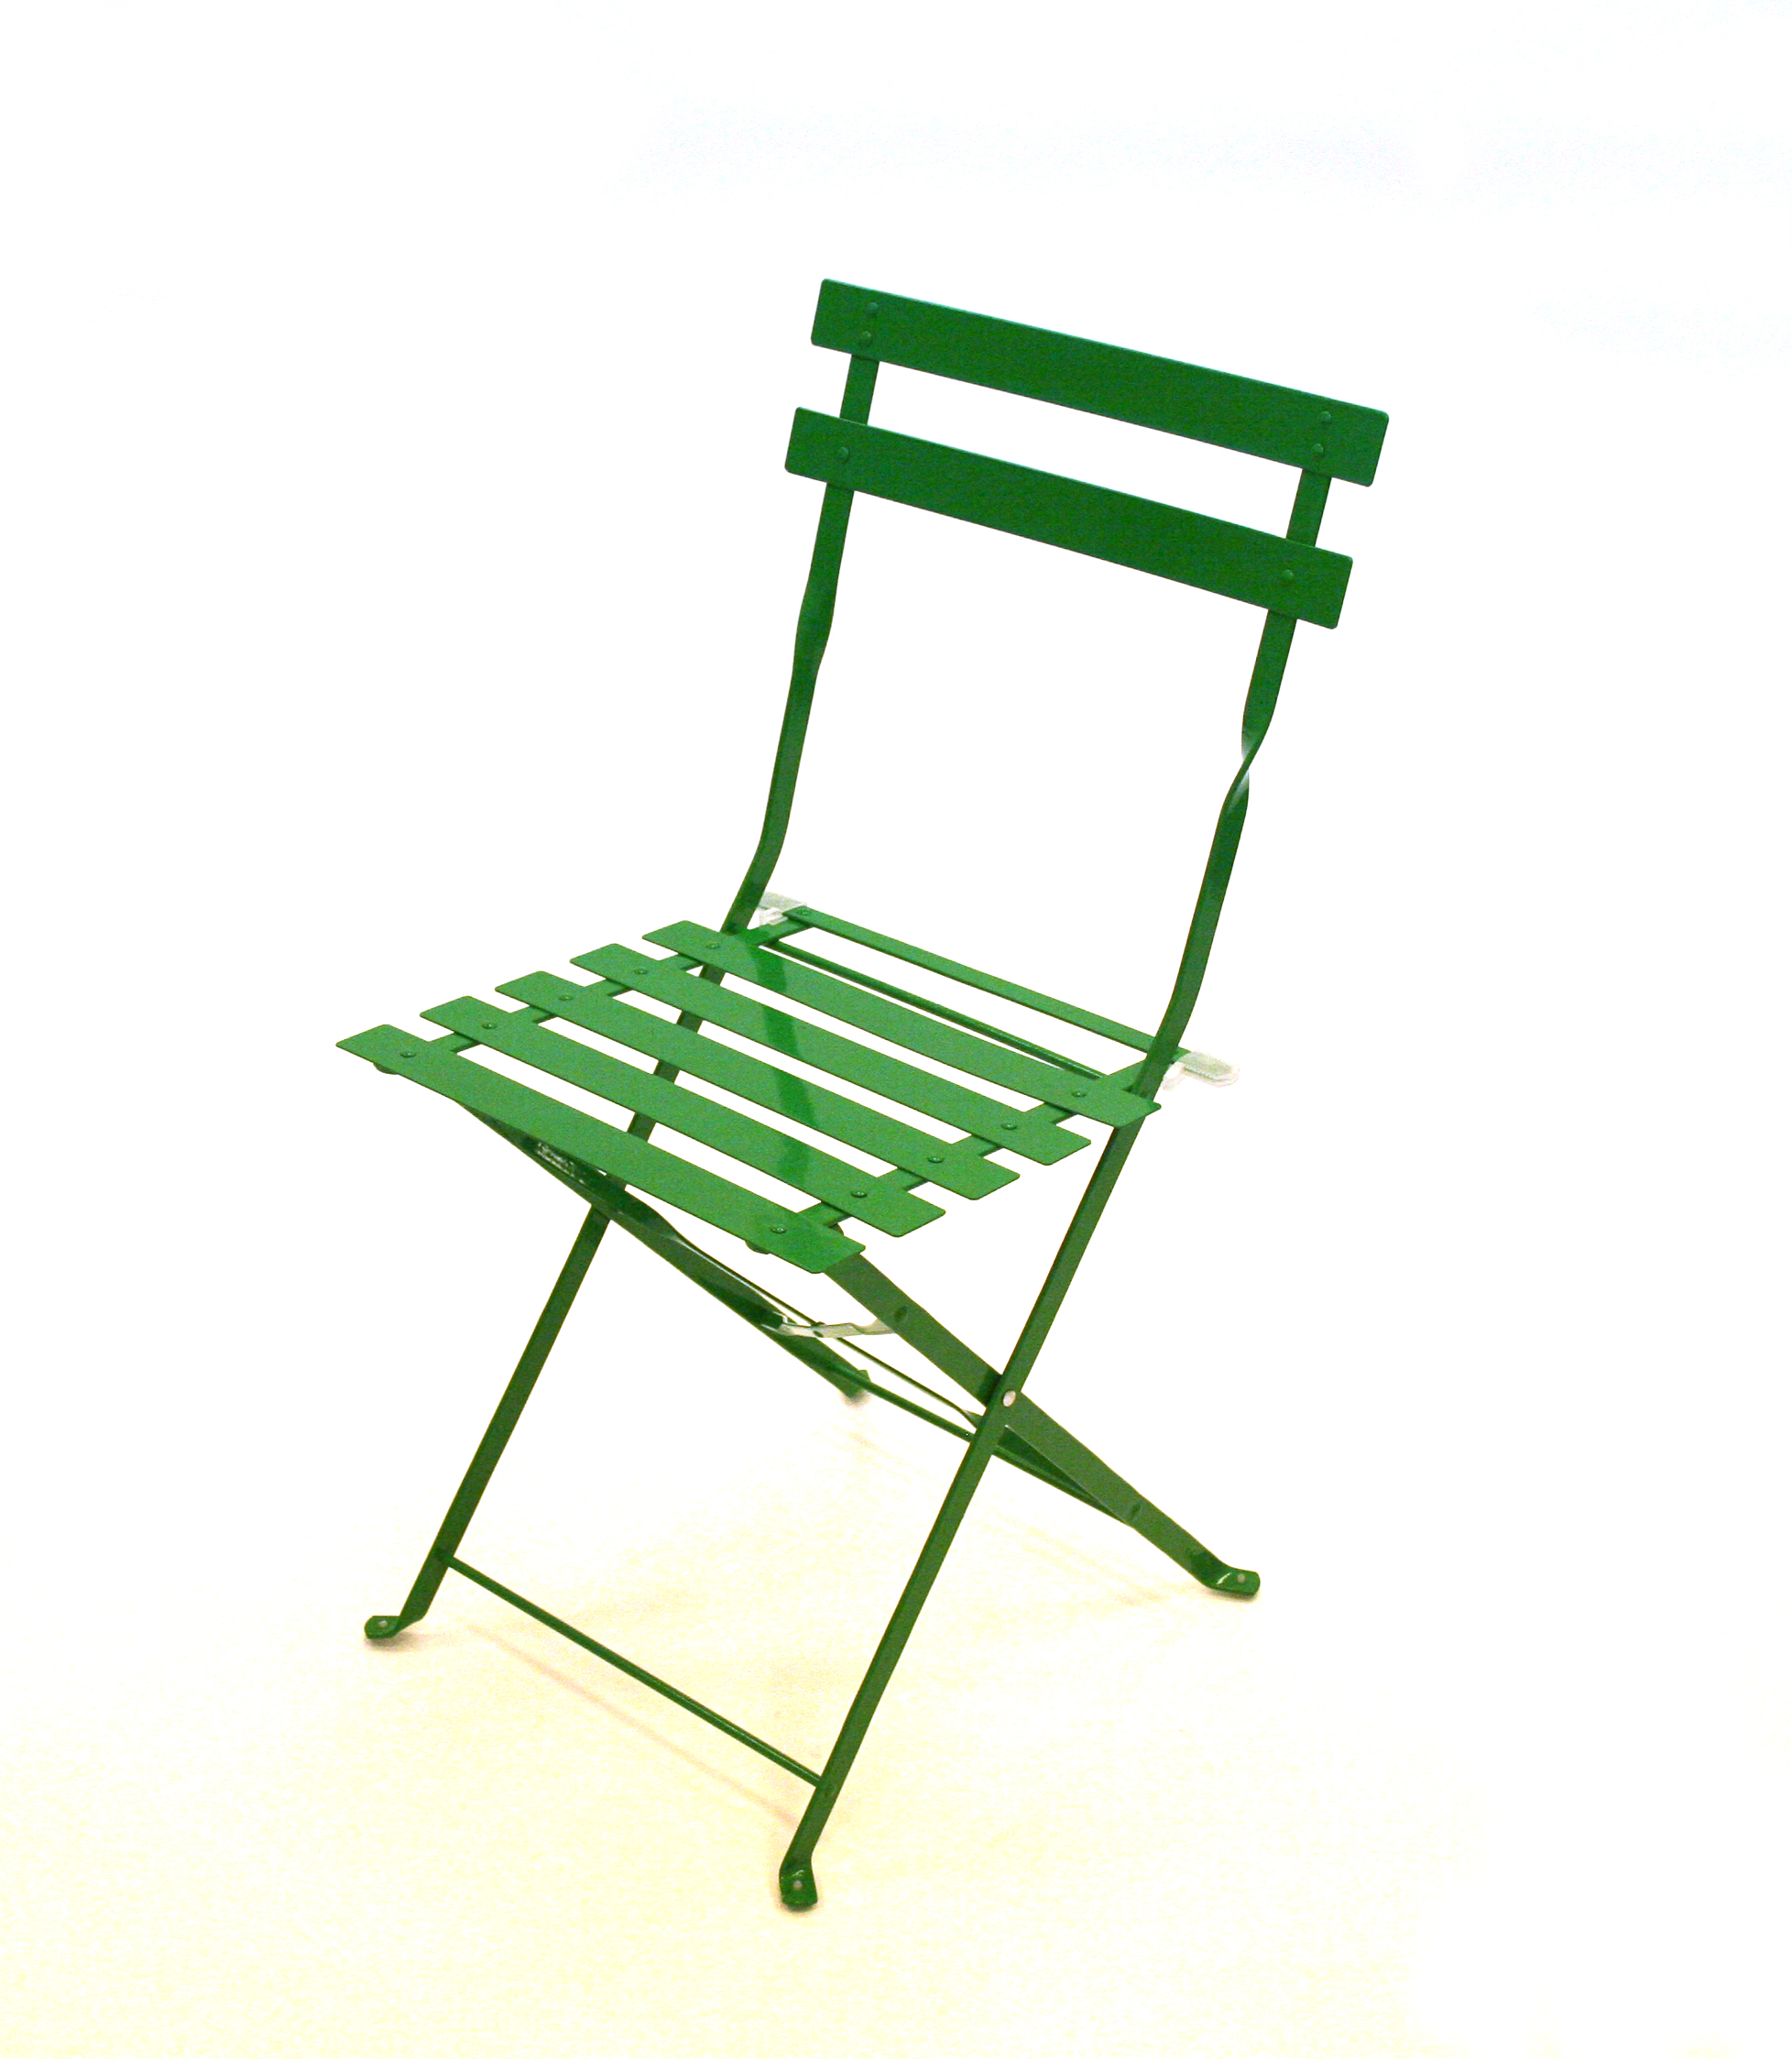 Green metal folding bistro balcony patio table and chair set - BE Event Hire